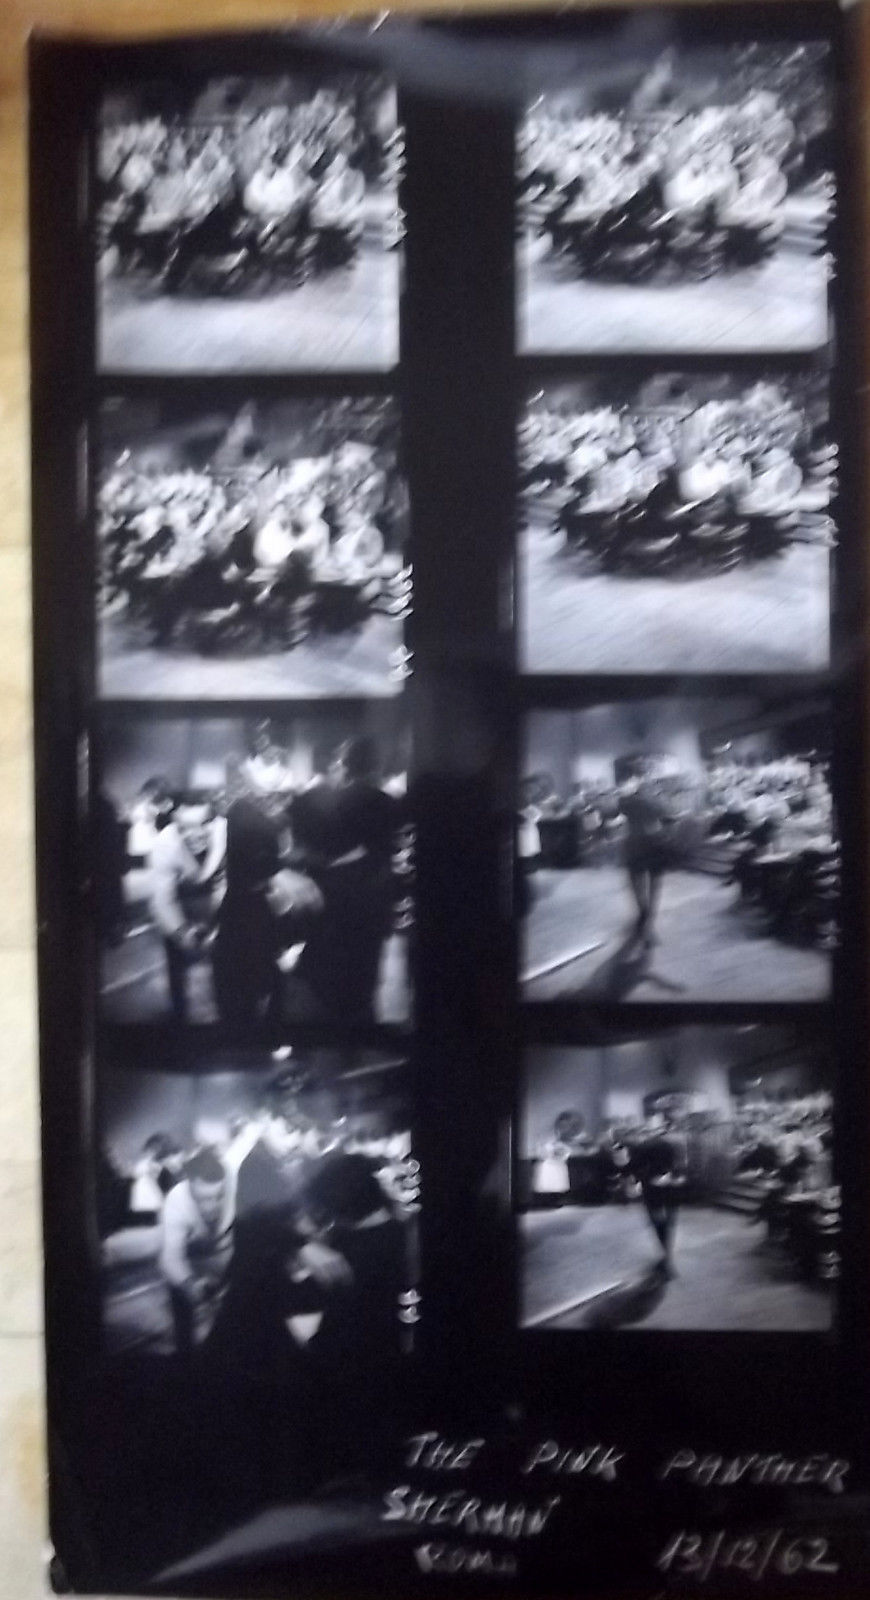 PETER SELLERS, & CAST (THE PINK PANTHER) RARE 1964 ORIG, CONTACT SHEET PHOTO # 5